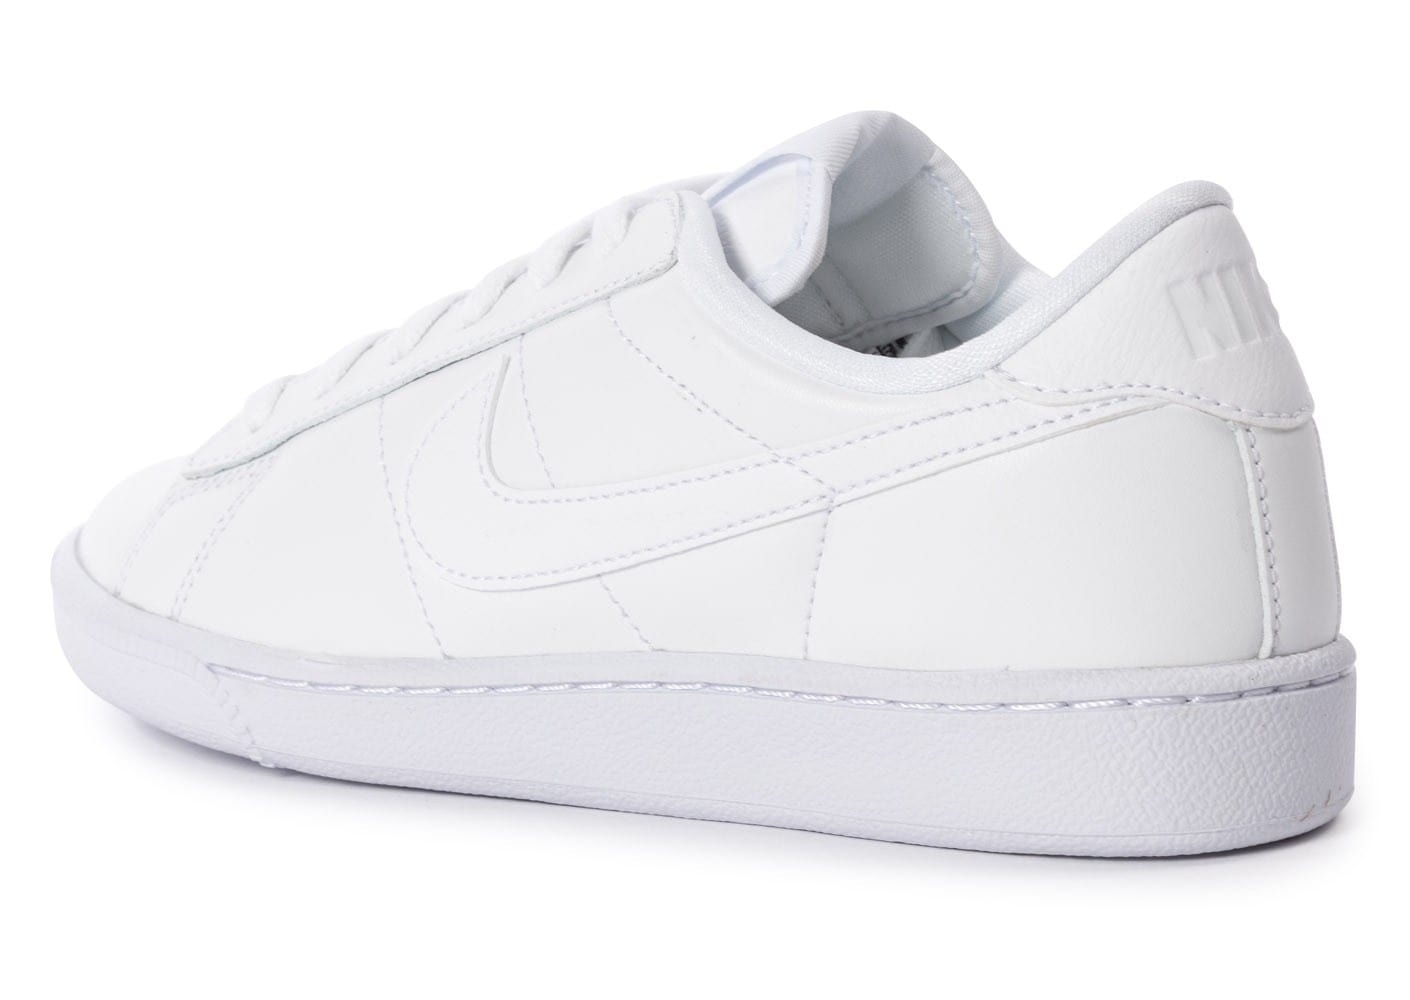 nike tennis classic blanche chaussures toutes les baskets sold es chausport. Black Bedroom Furniture Sets. Home Design Ideas